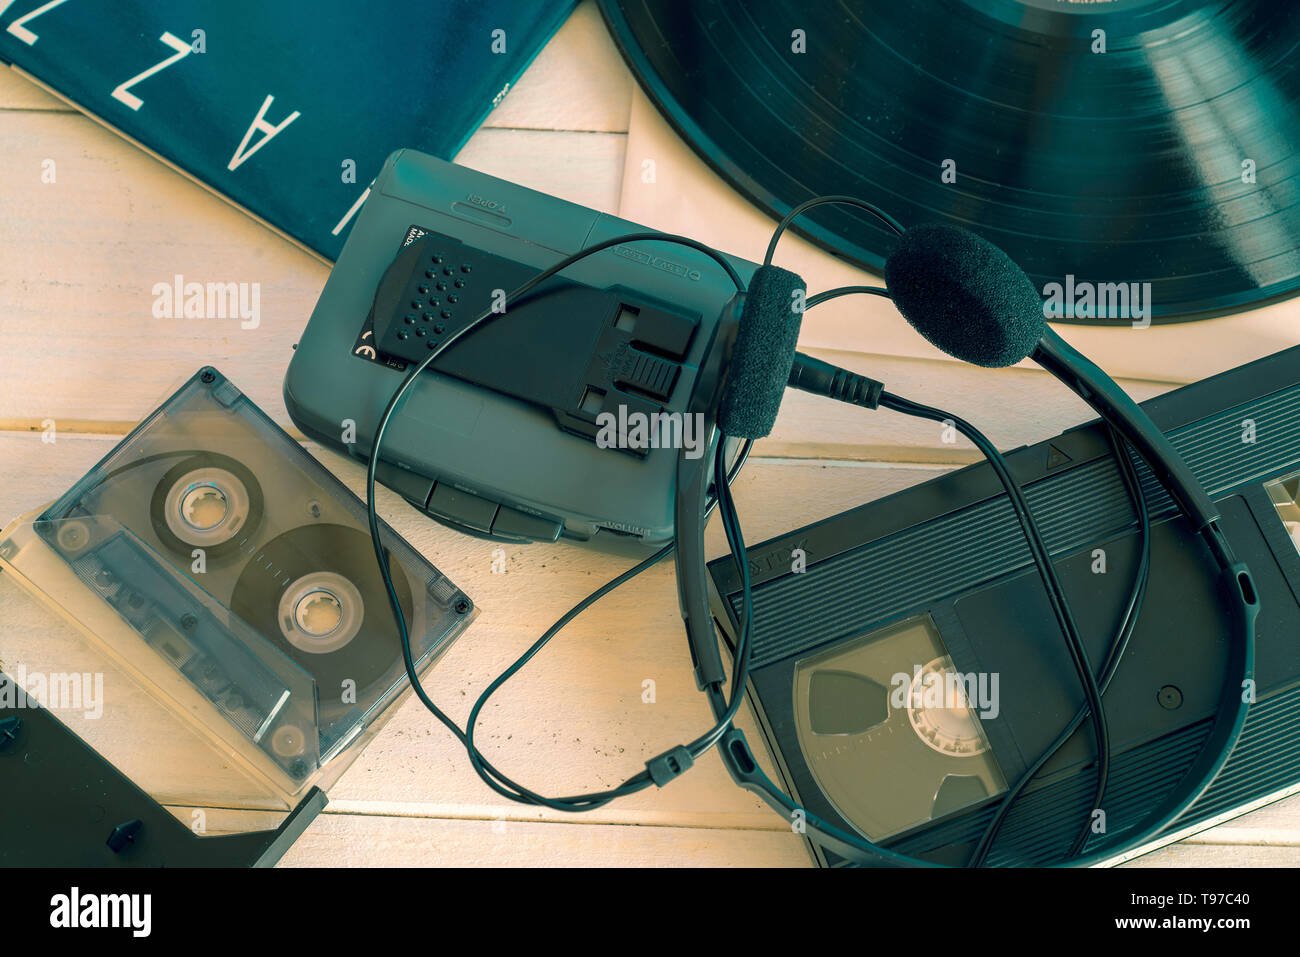 Vhs Player Stock Photos & Vhs Player Stock Images - Alamy on